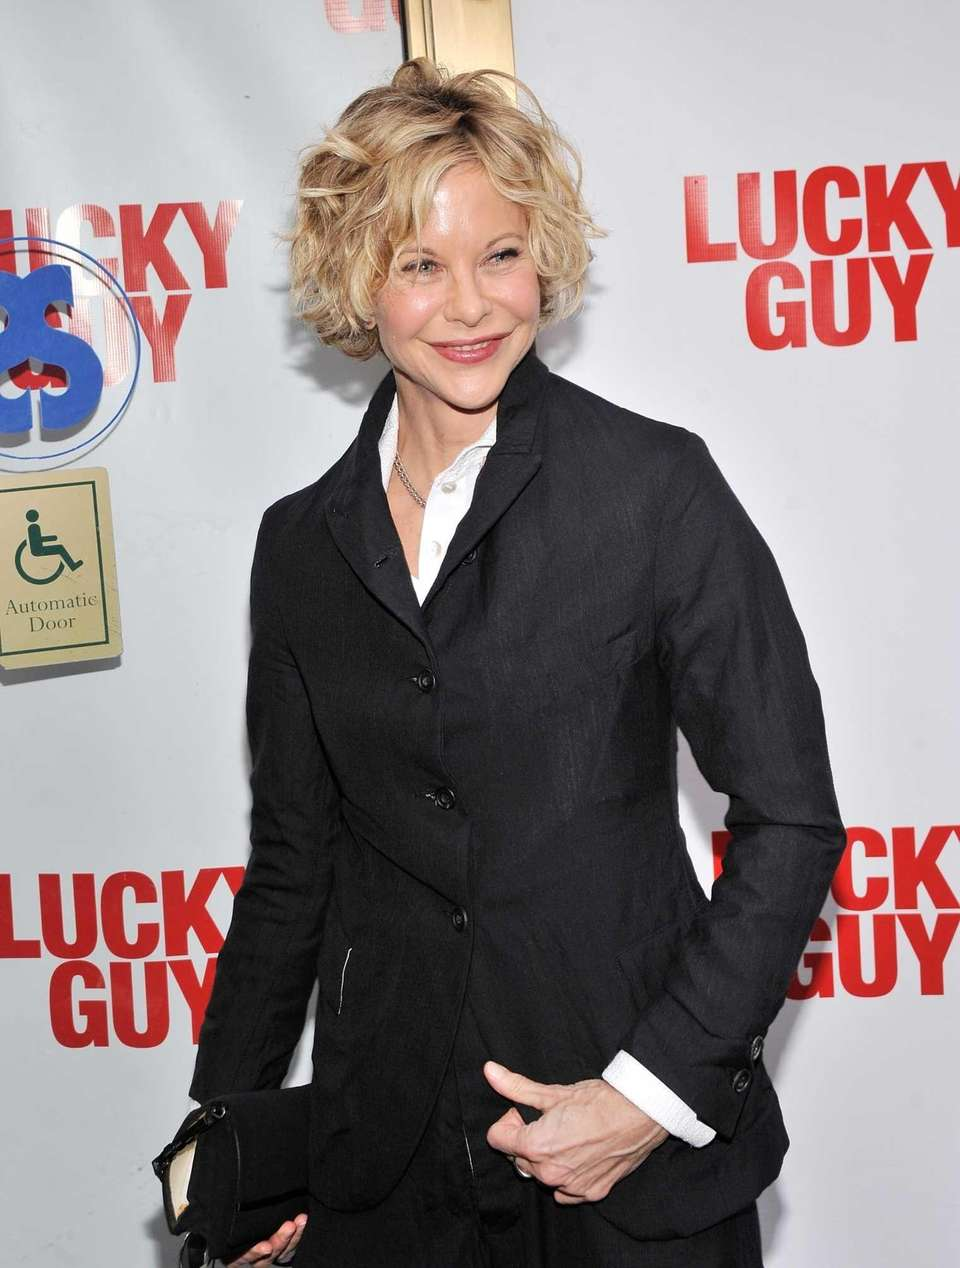 Actress Meg Ryan, born on Nov. 19, 1961.